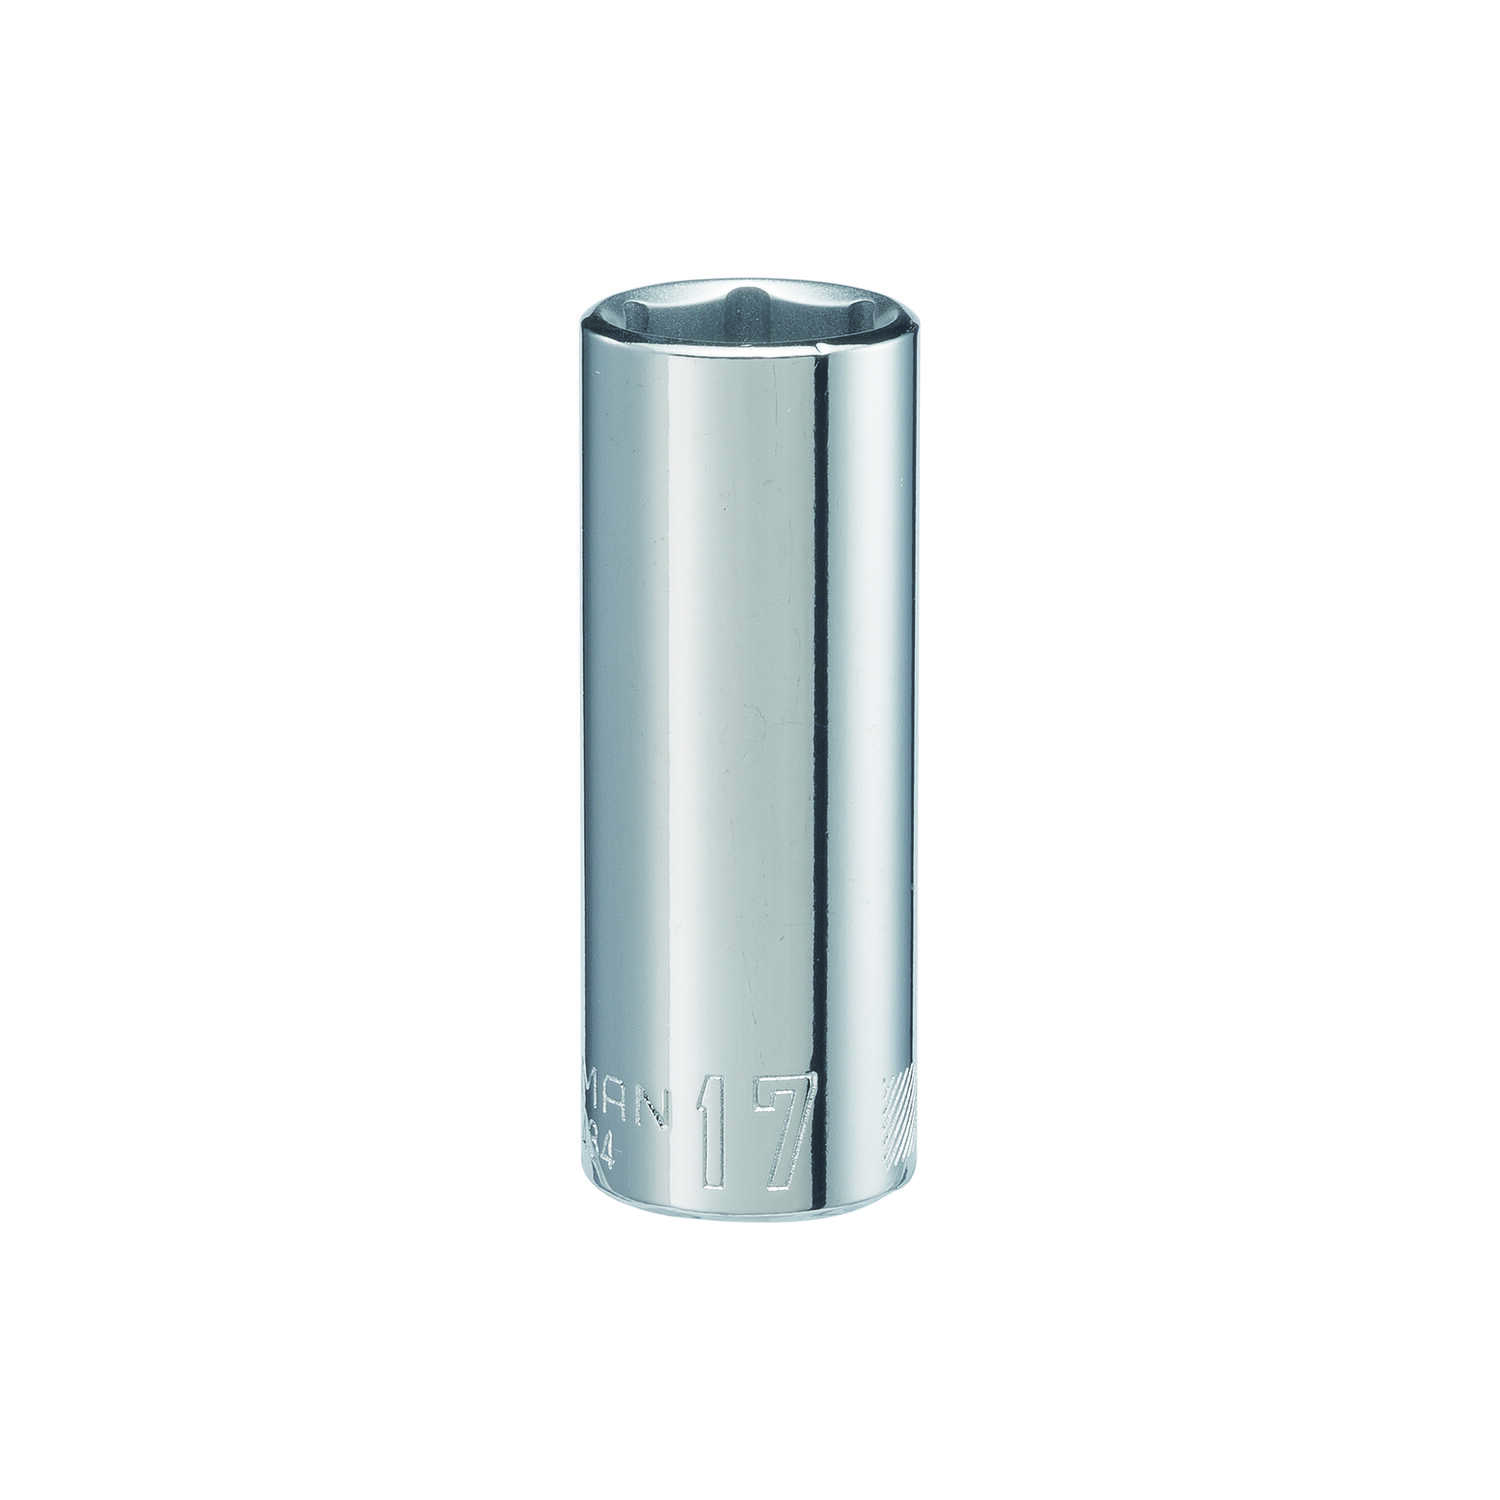 Craftsman  17 mm  x 3/8 in. drive  Metric  6 Point Deep  Socket  1 pc.